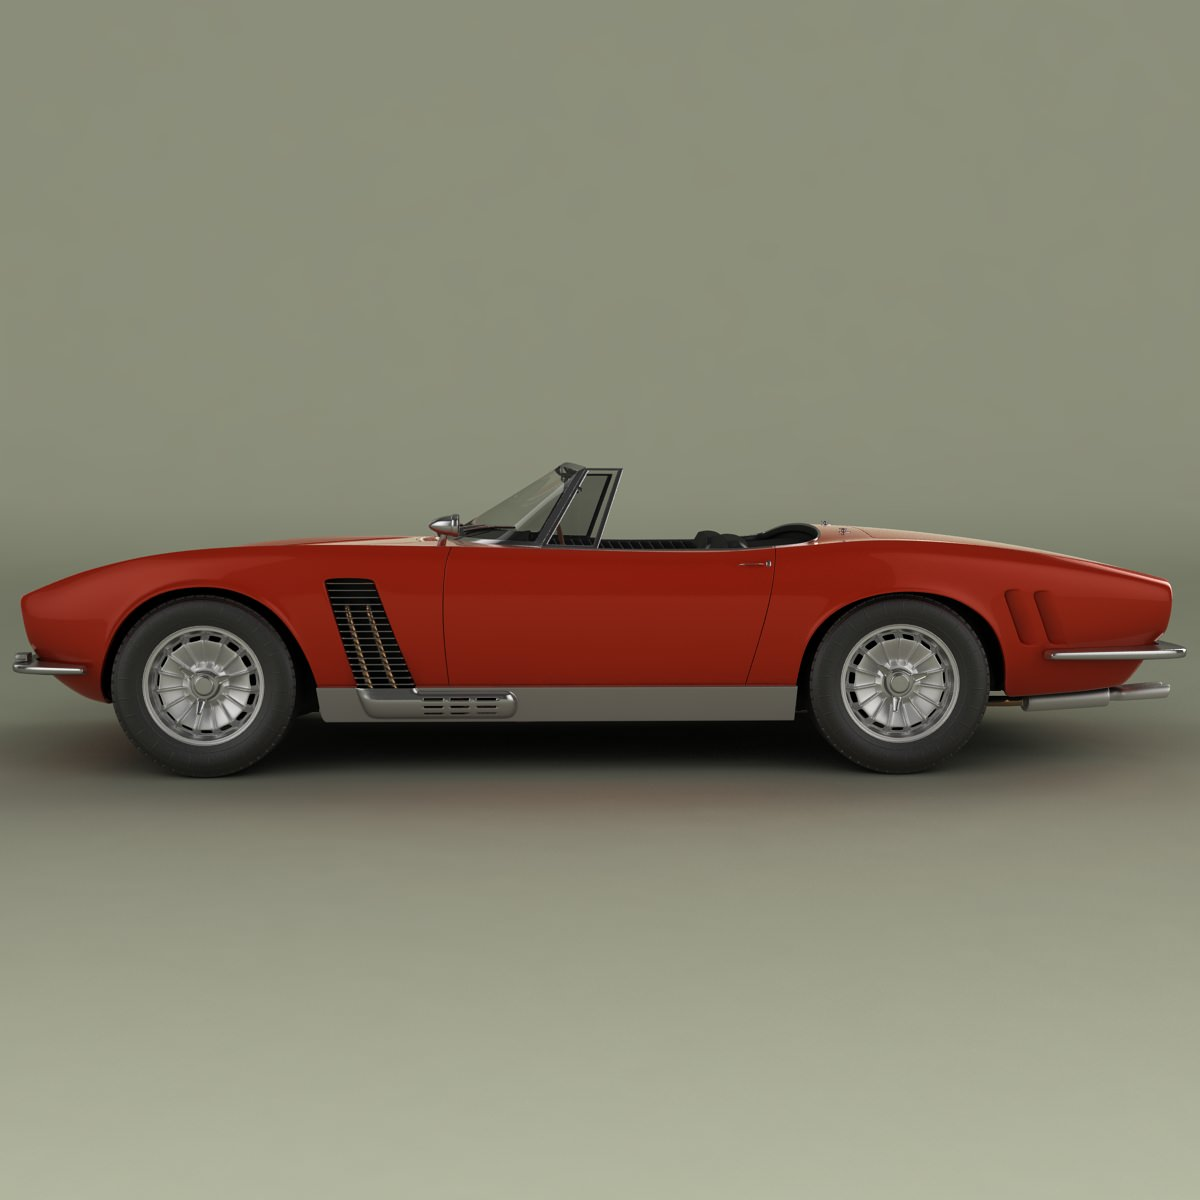 iso grifo convertible 1964 3d model max obj 3ds. Black Bedroom Furniture Sets. Home Design Ideas